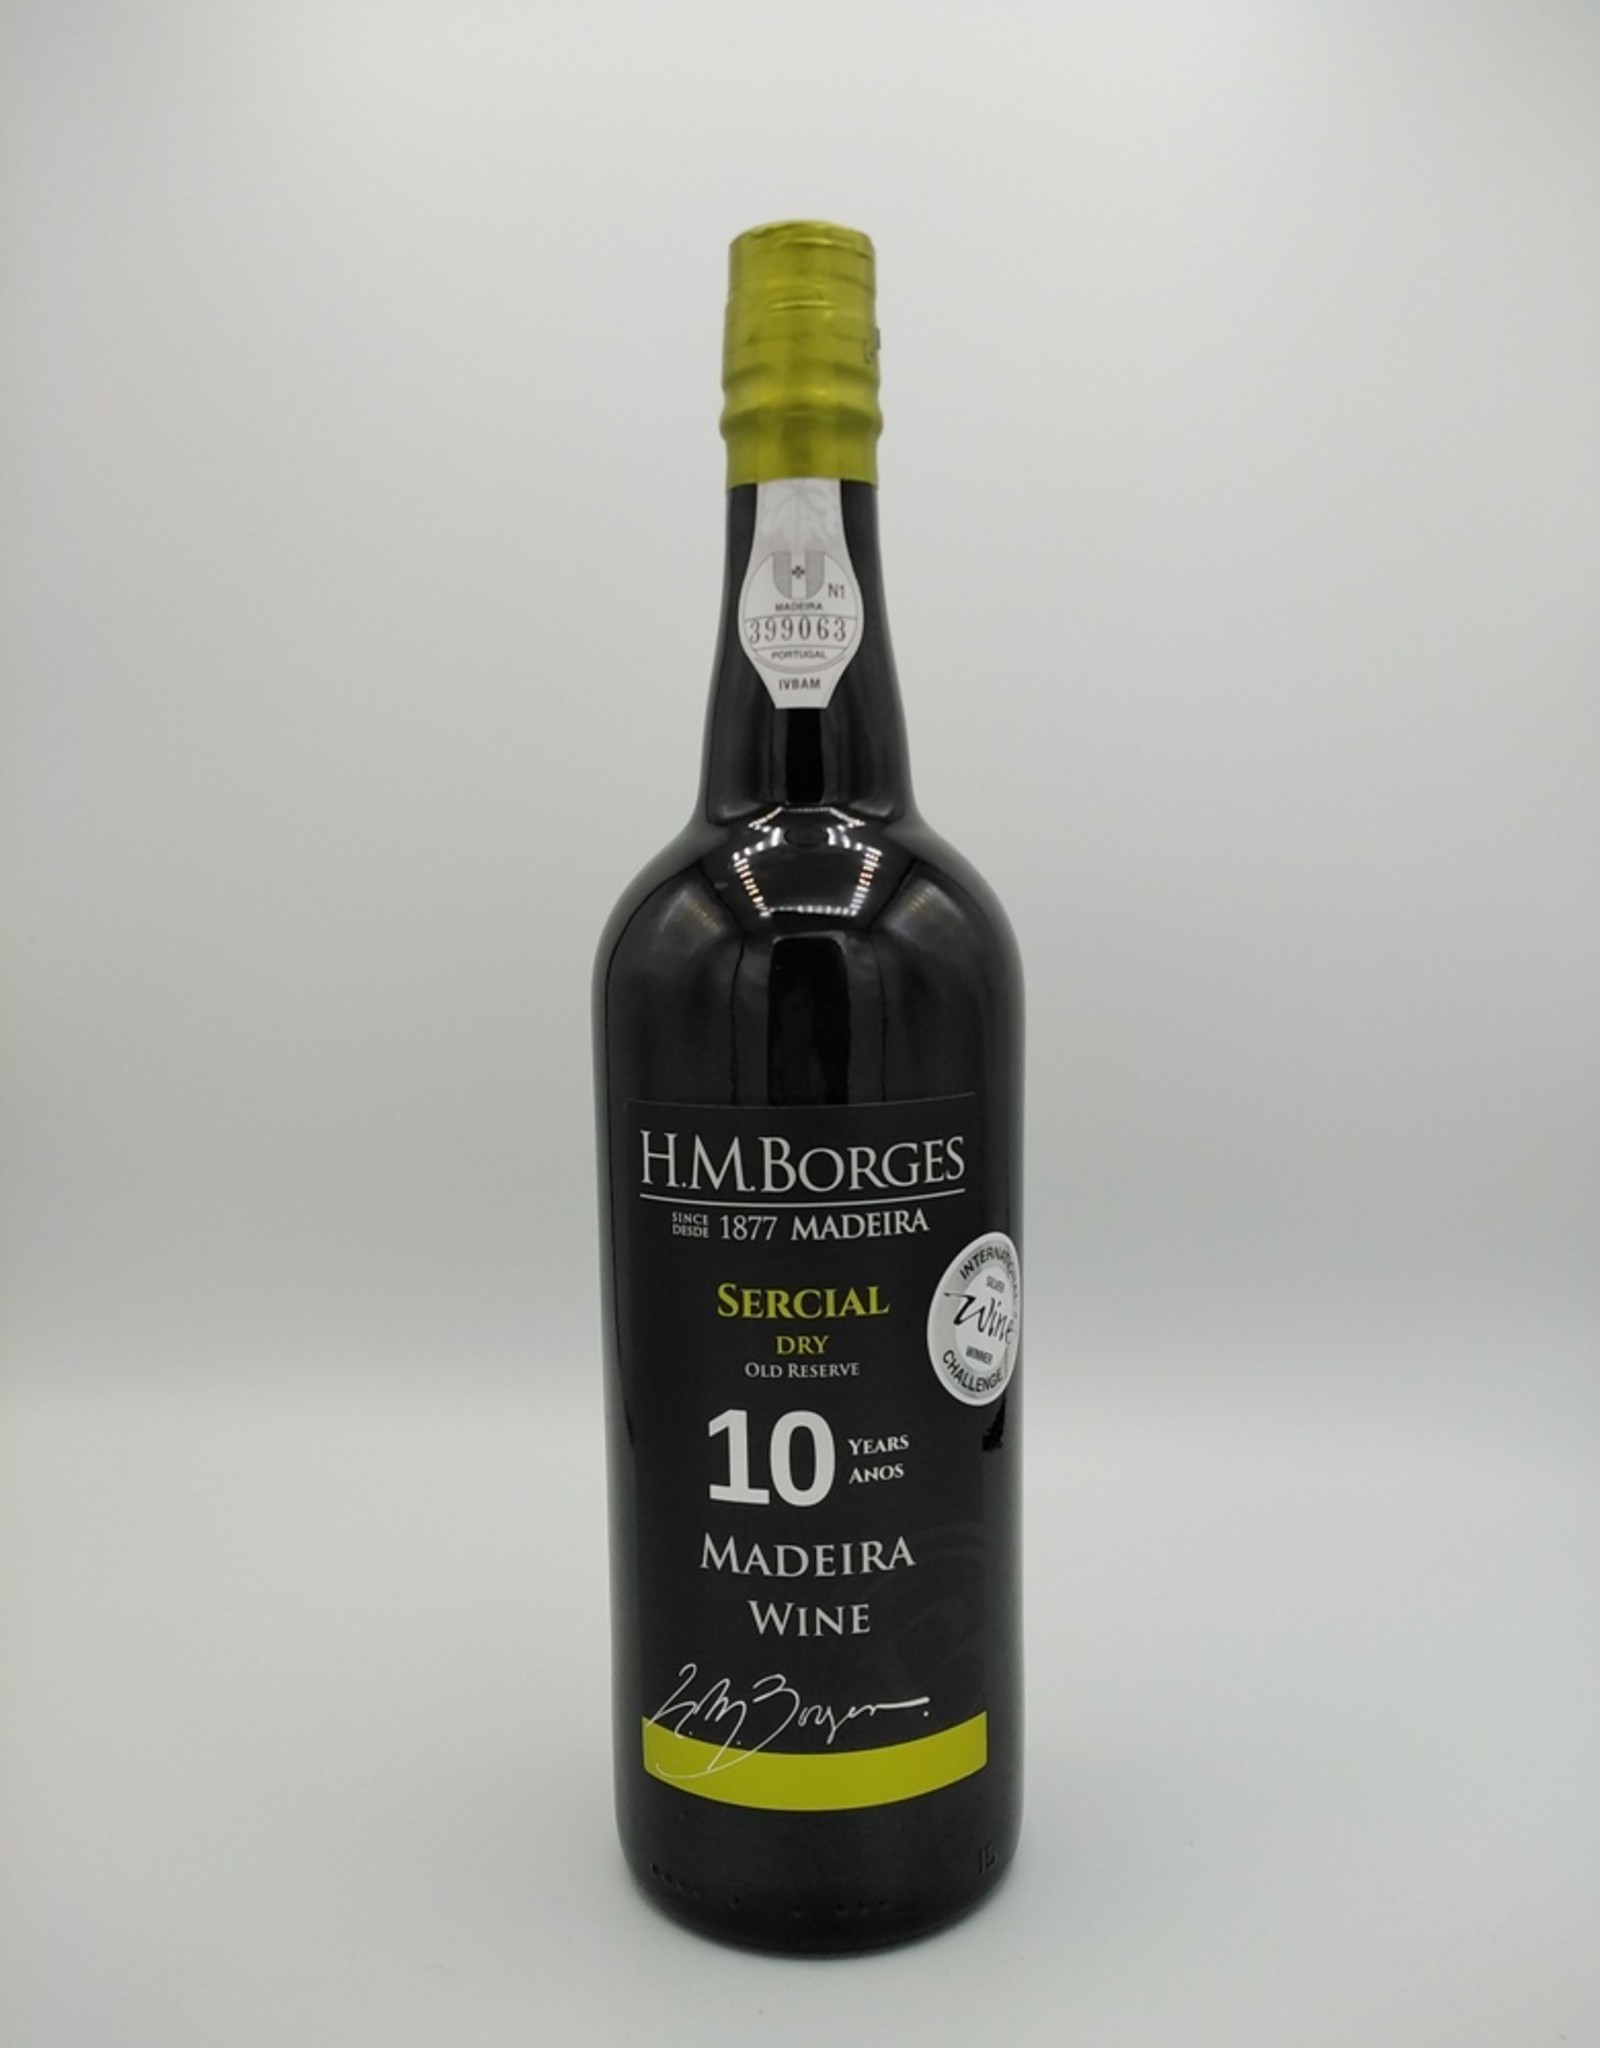 H.M. Borges H.M. Borges - Madeira Old Reserve Sercial - 10 years